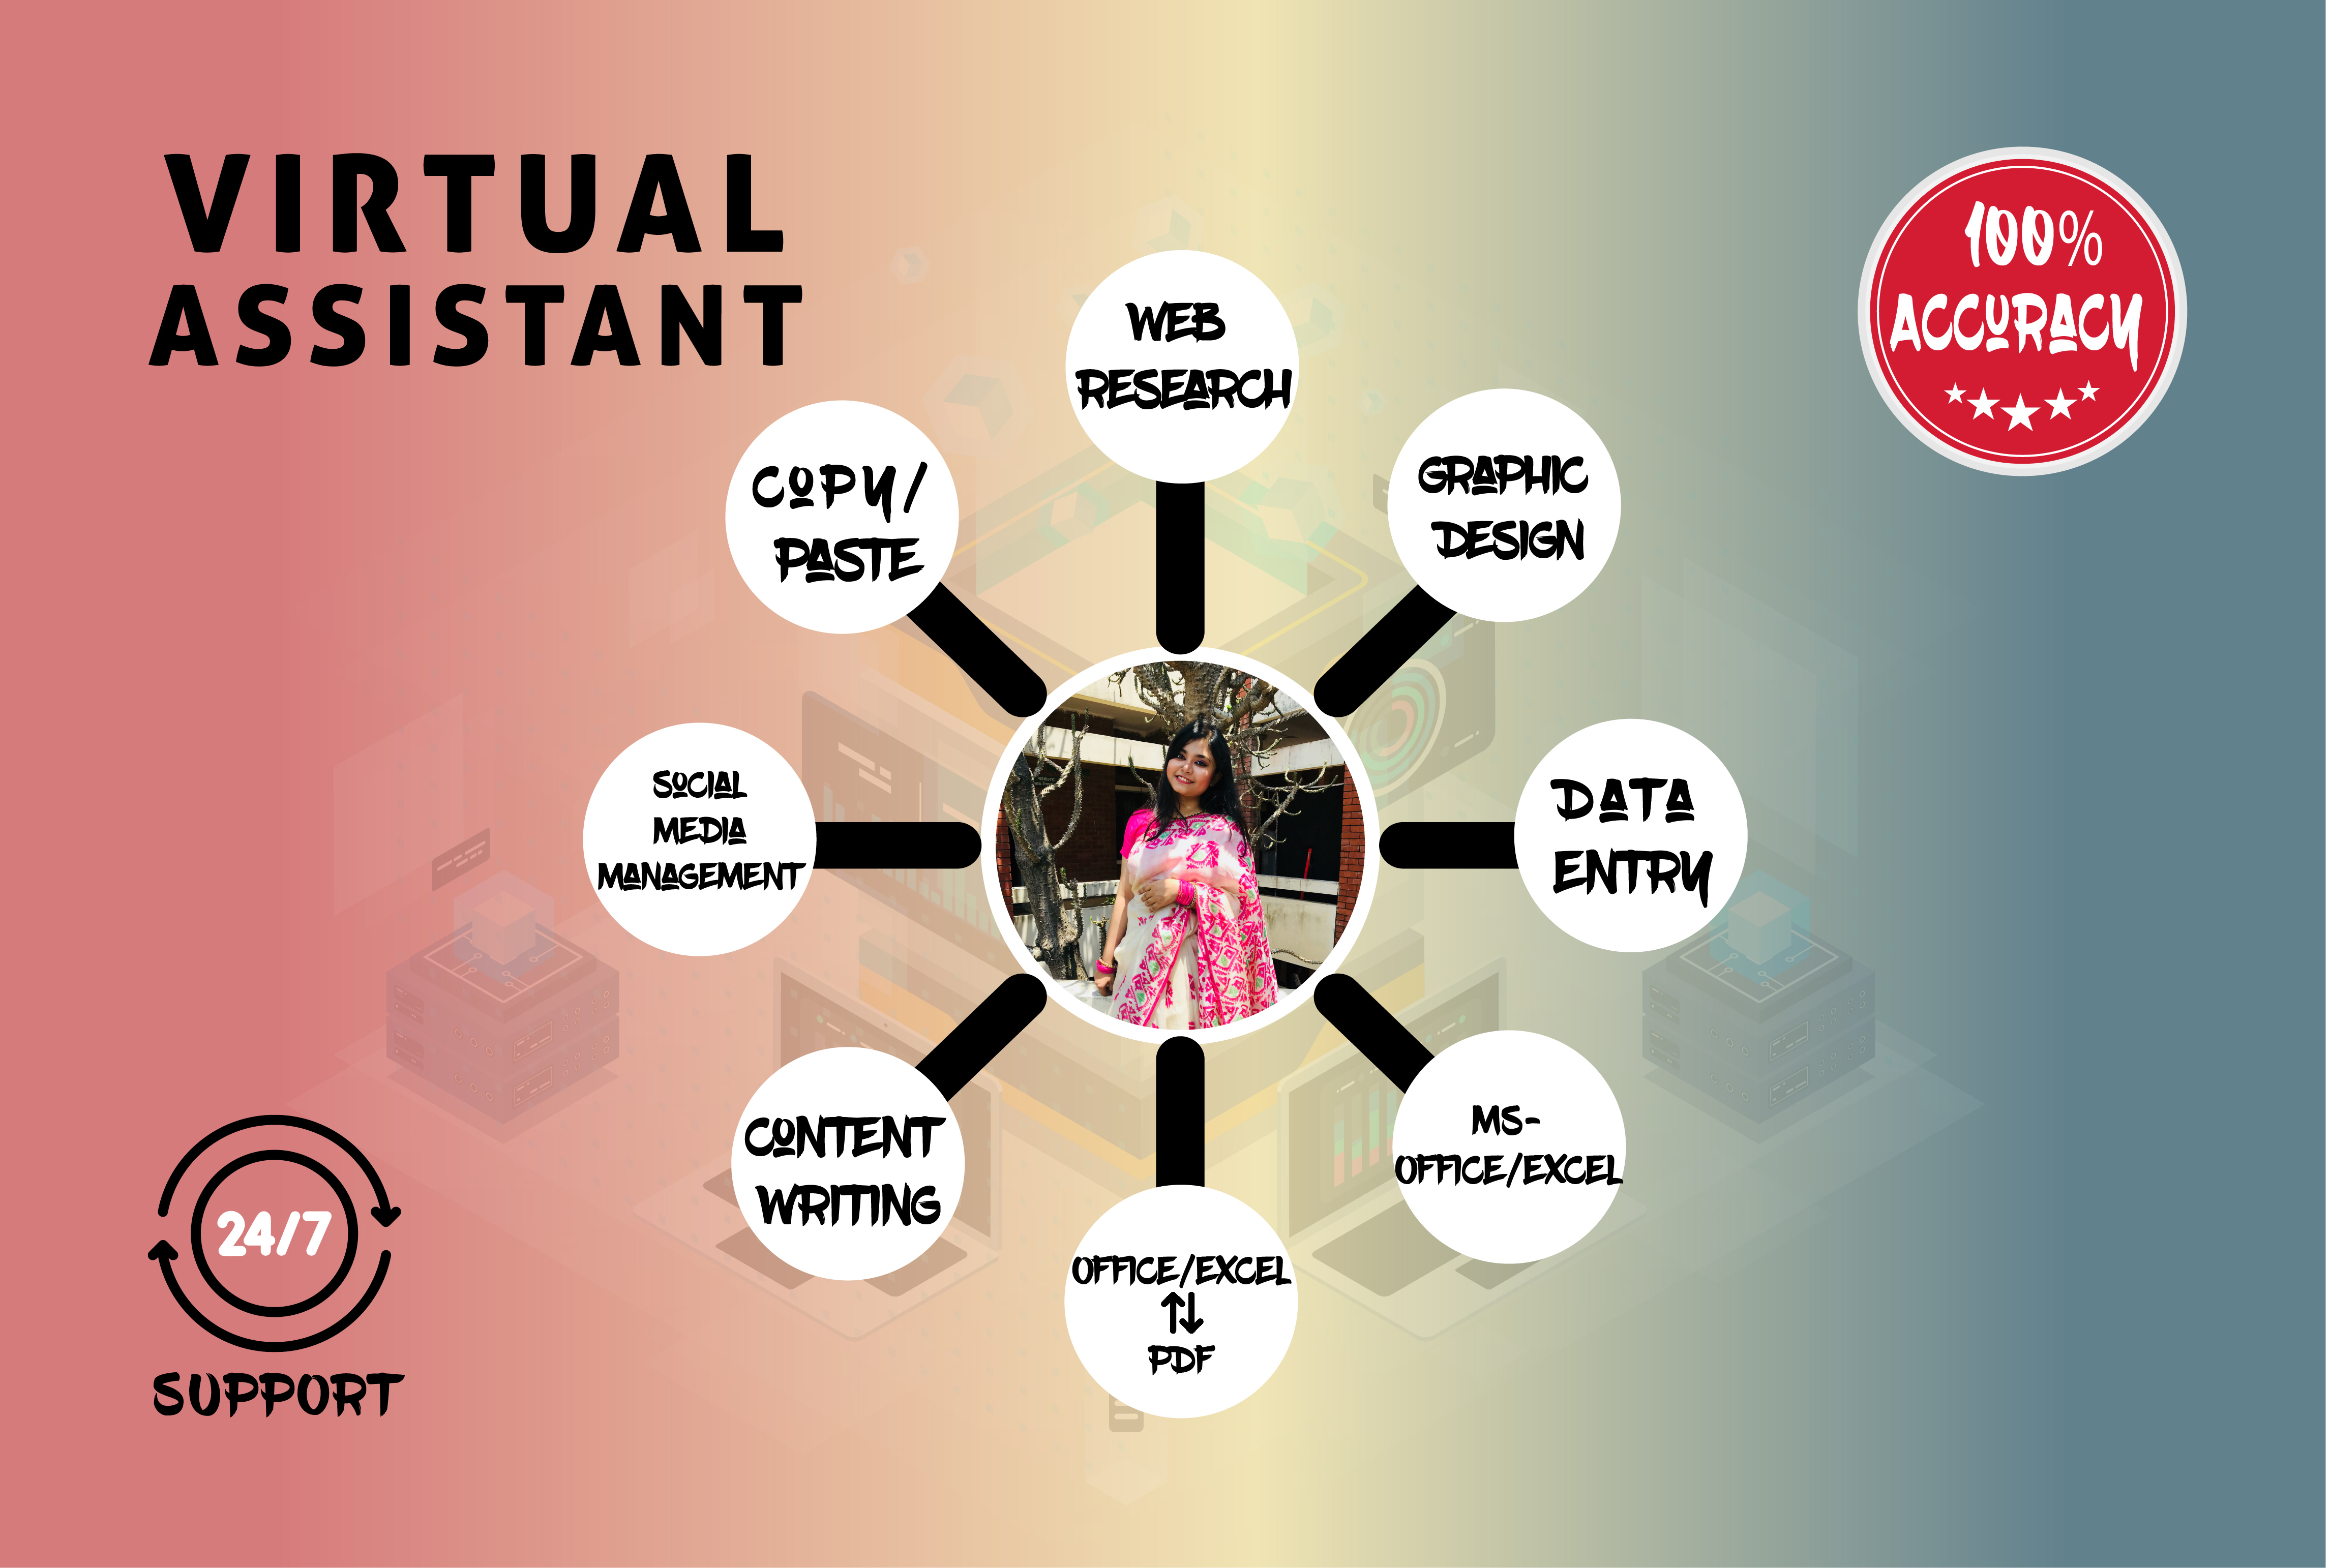 I will be your reliable virtual assistant for data entry & data mining